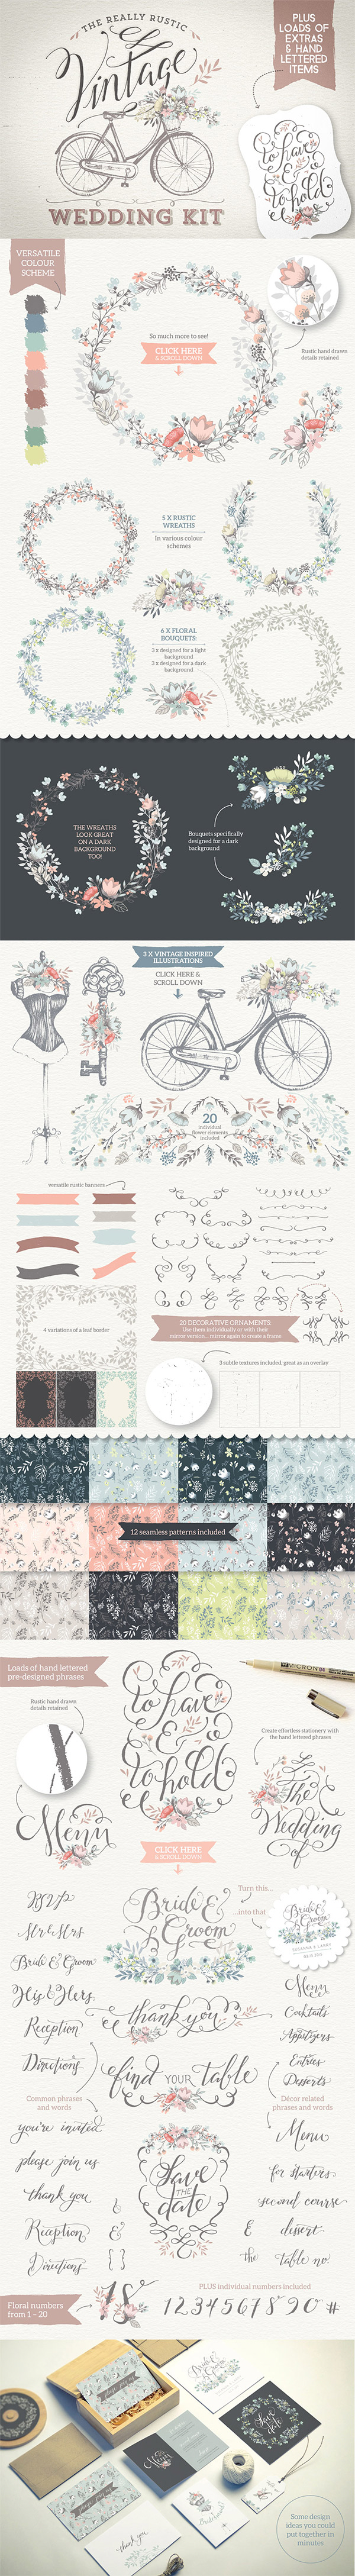 The Really Rustic Wedding Kit preview